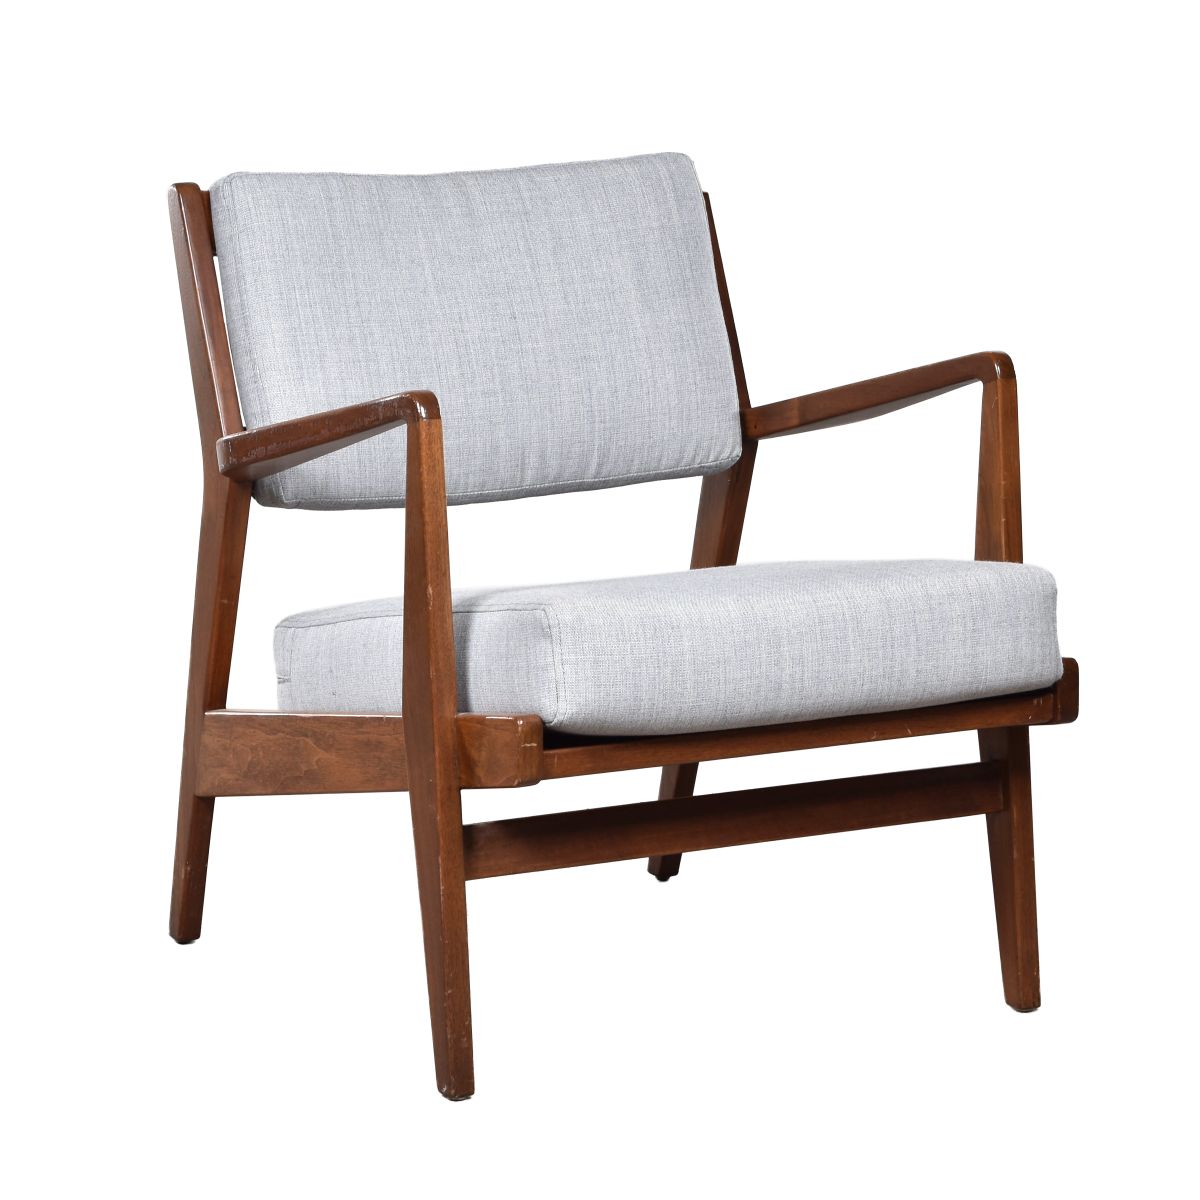 u easy chair by jens risom s for sale at pamono - u easy chair by jens risom s